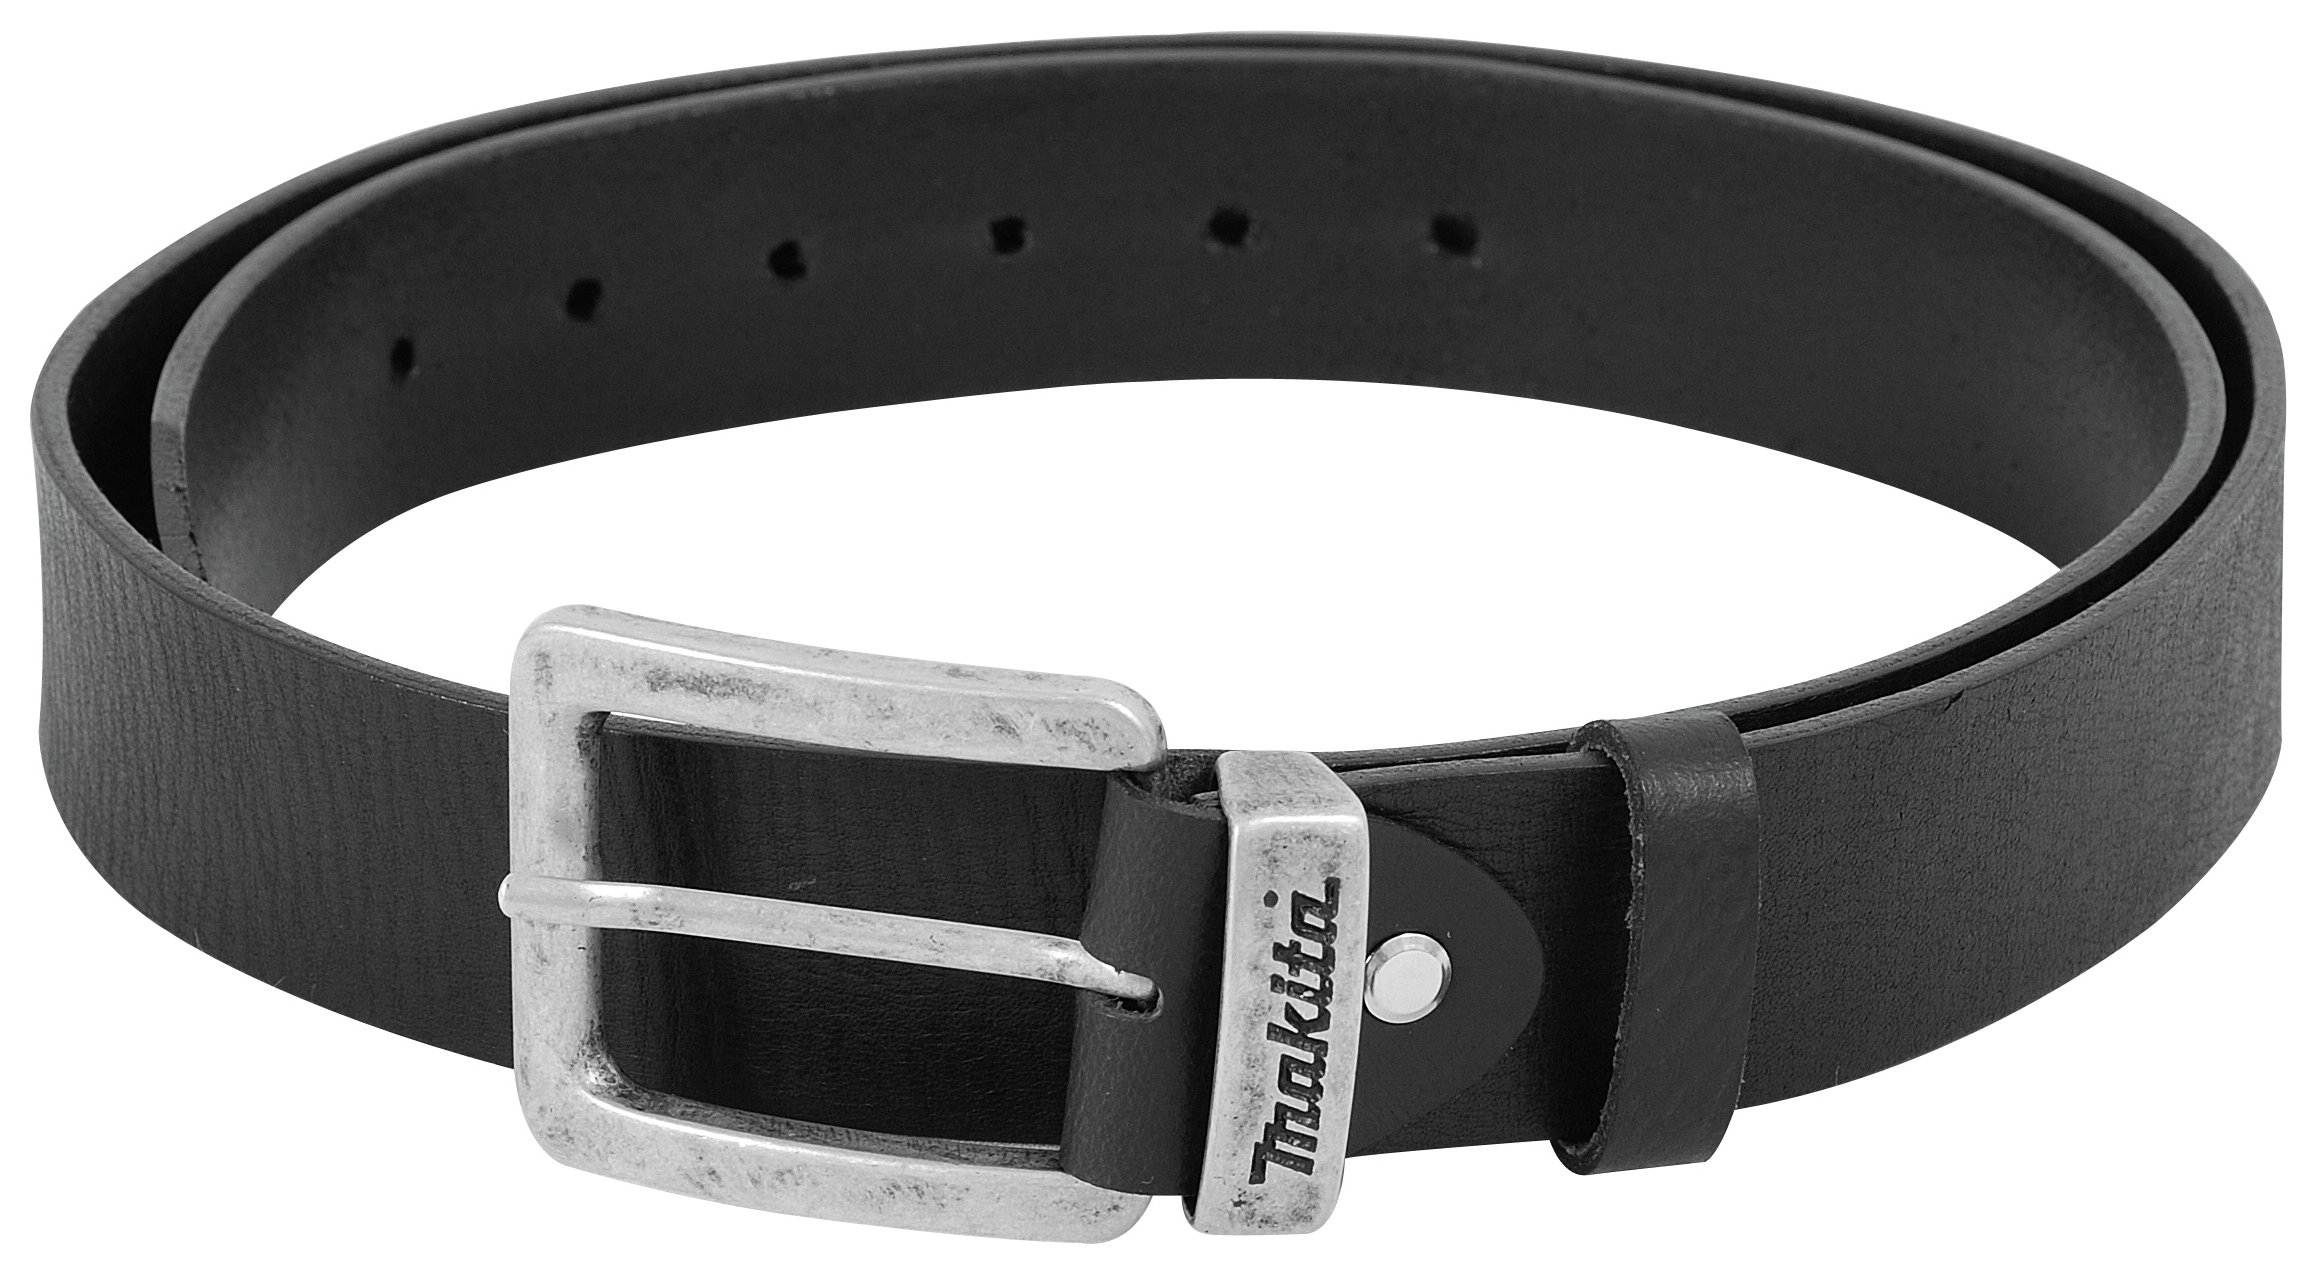 Image of Makita Black Leather Belt 33 inch - 45 inch.